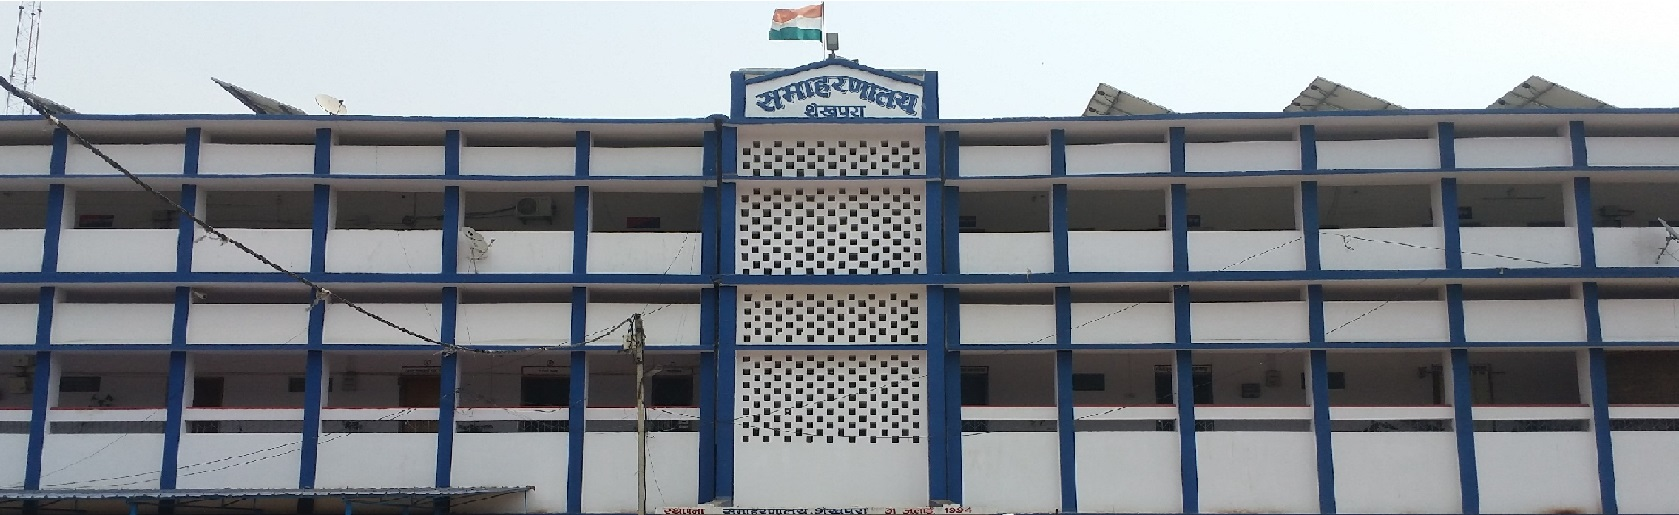 Collectorate-Sheikhpura